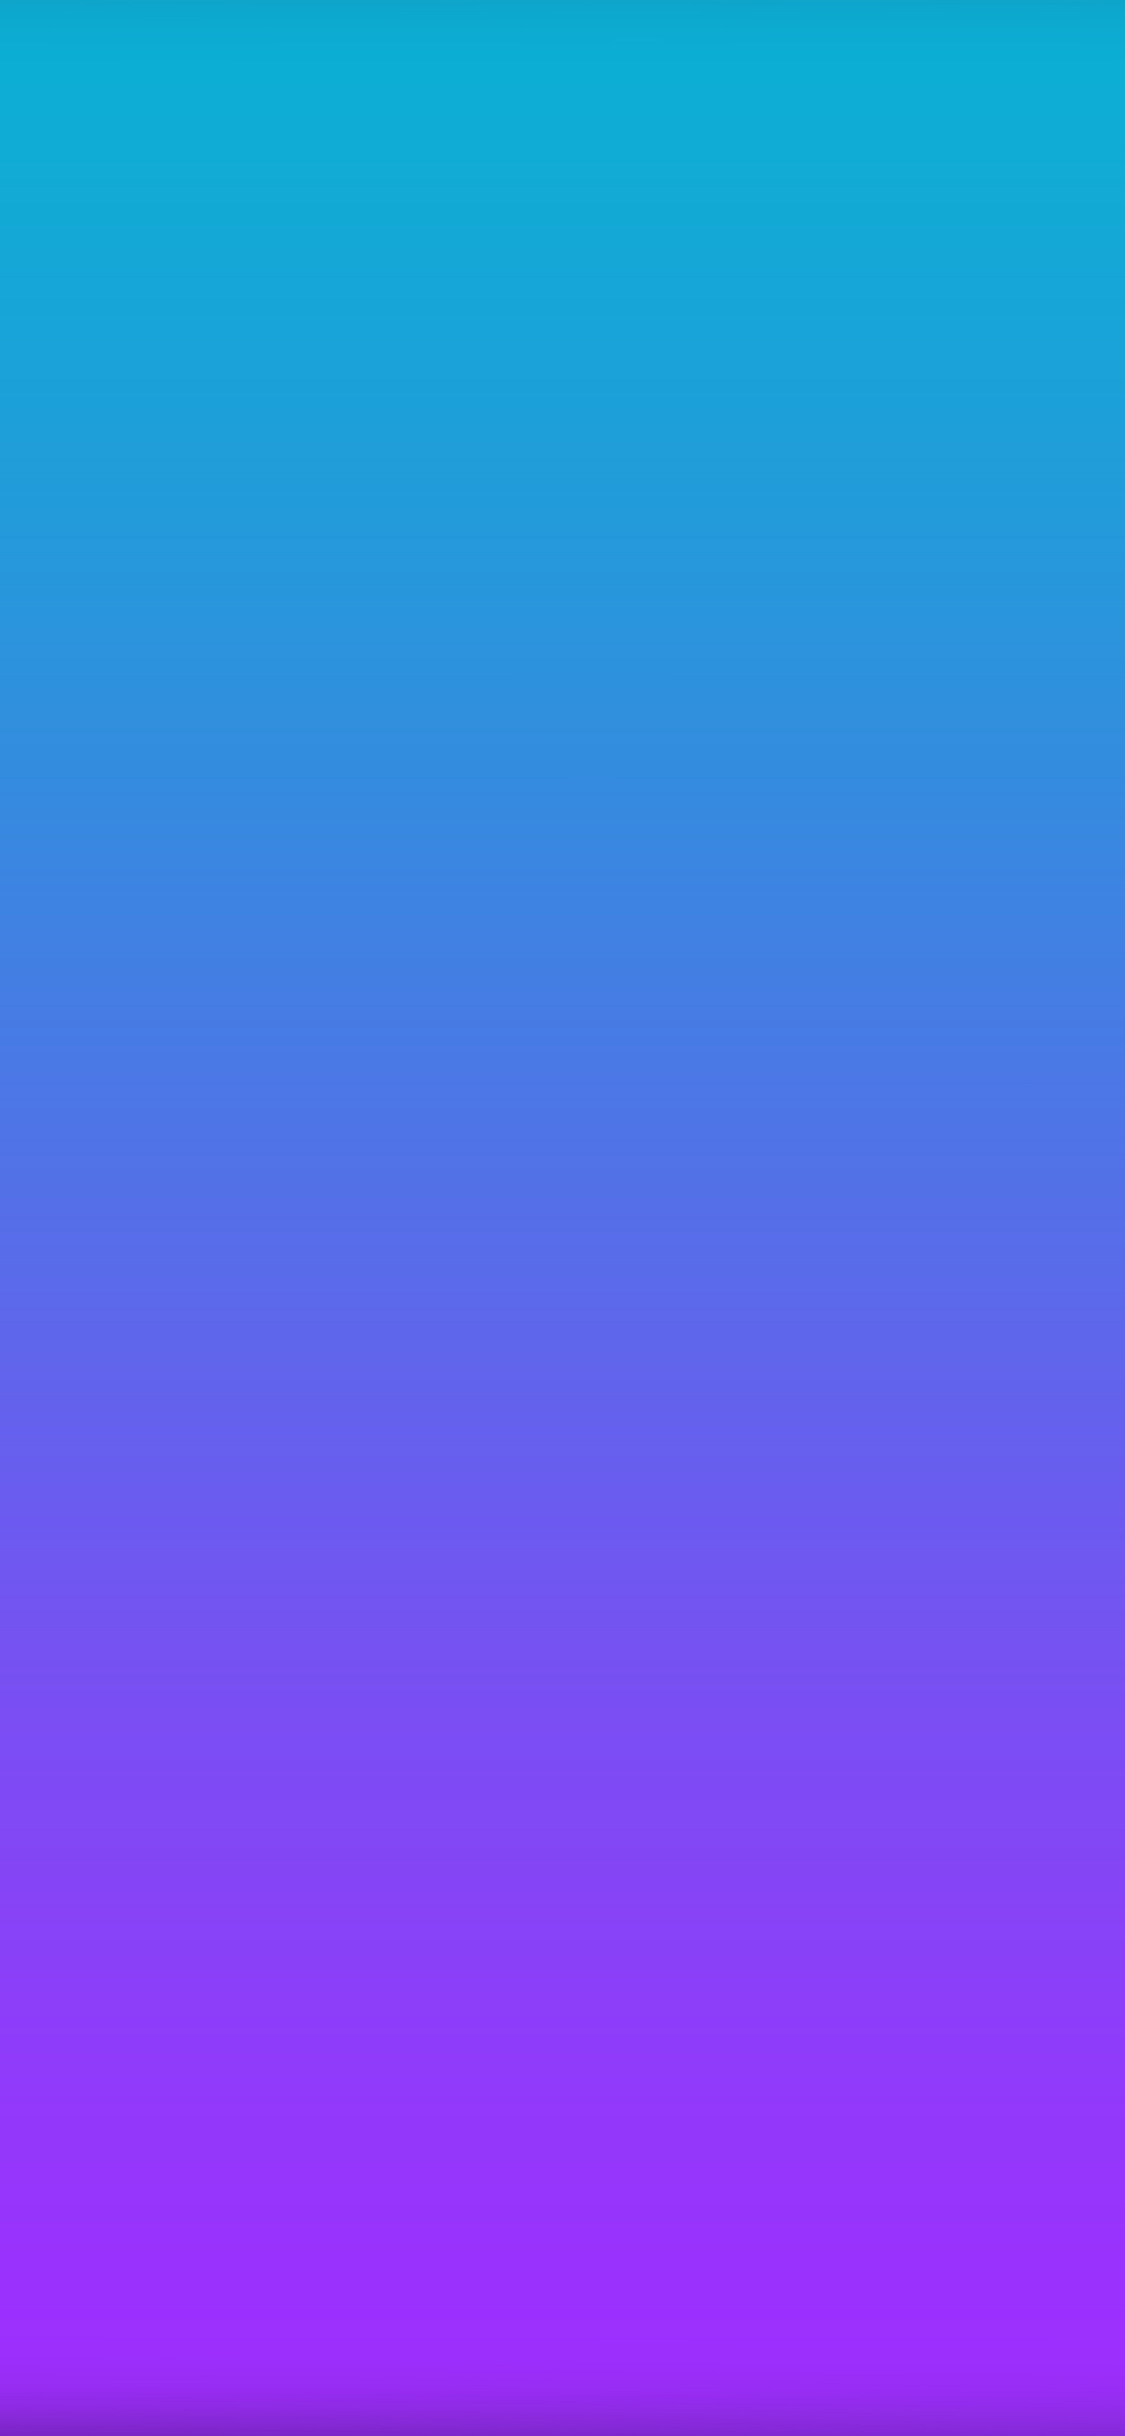 iPhoneXpapers.com-Apple-iPhone-wallpaper-sl62-blue-purple-soft-blur-gradation